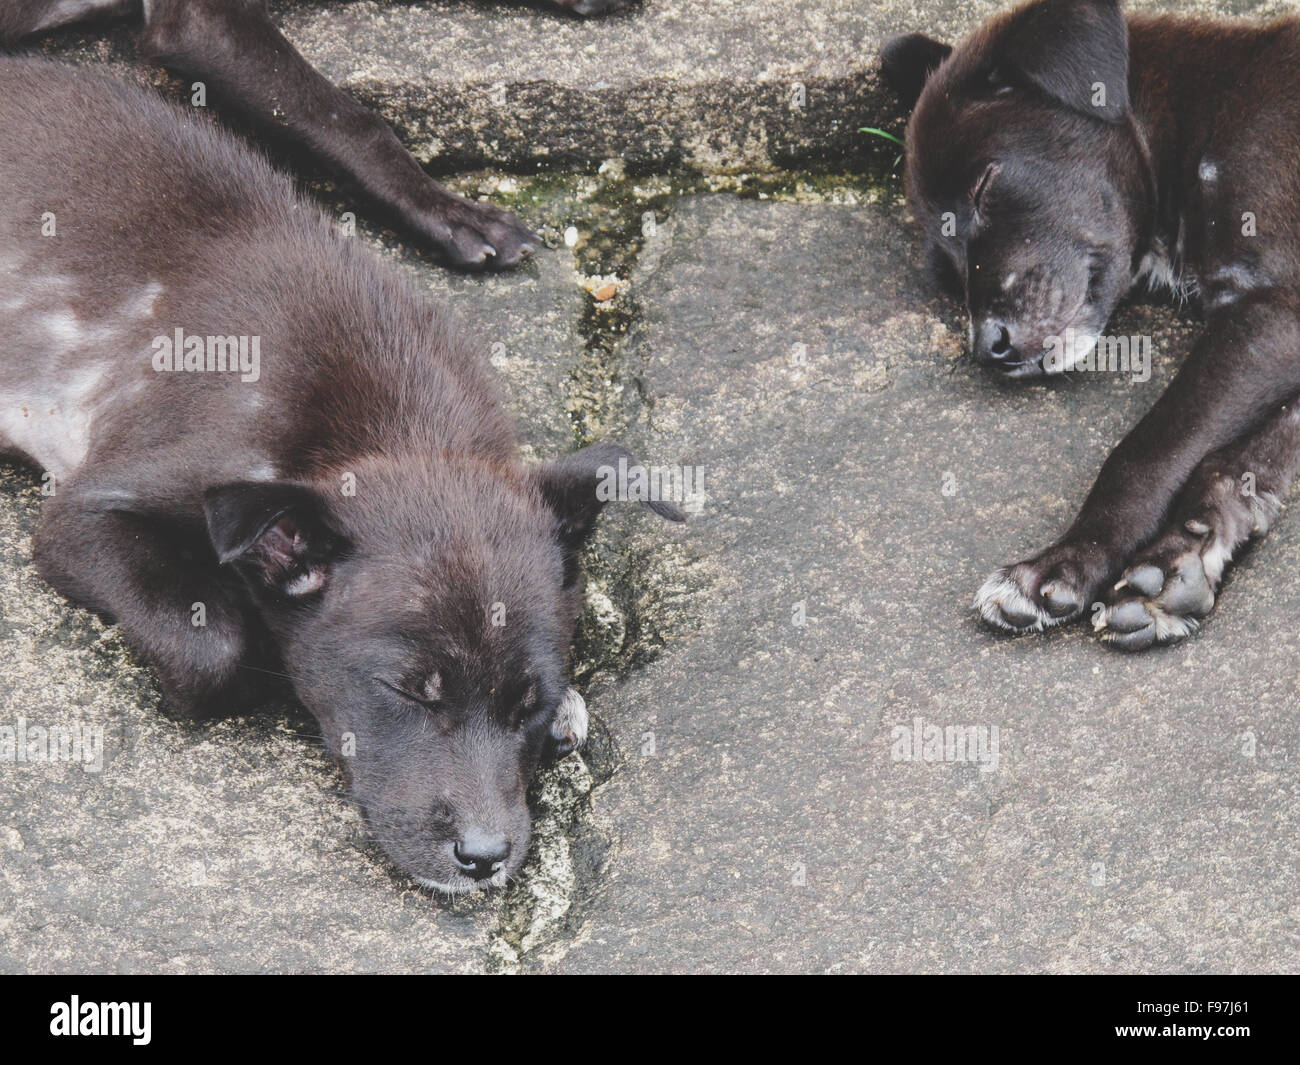 Two Puppies Sleeping - Stock Image